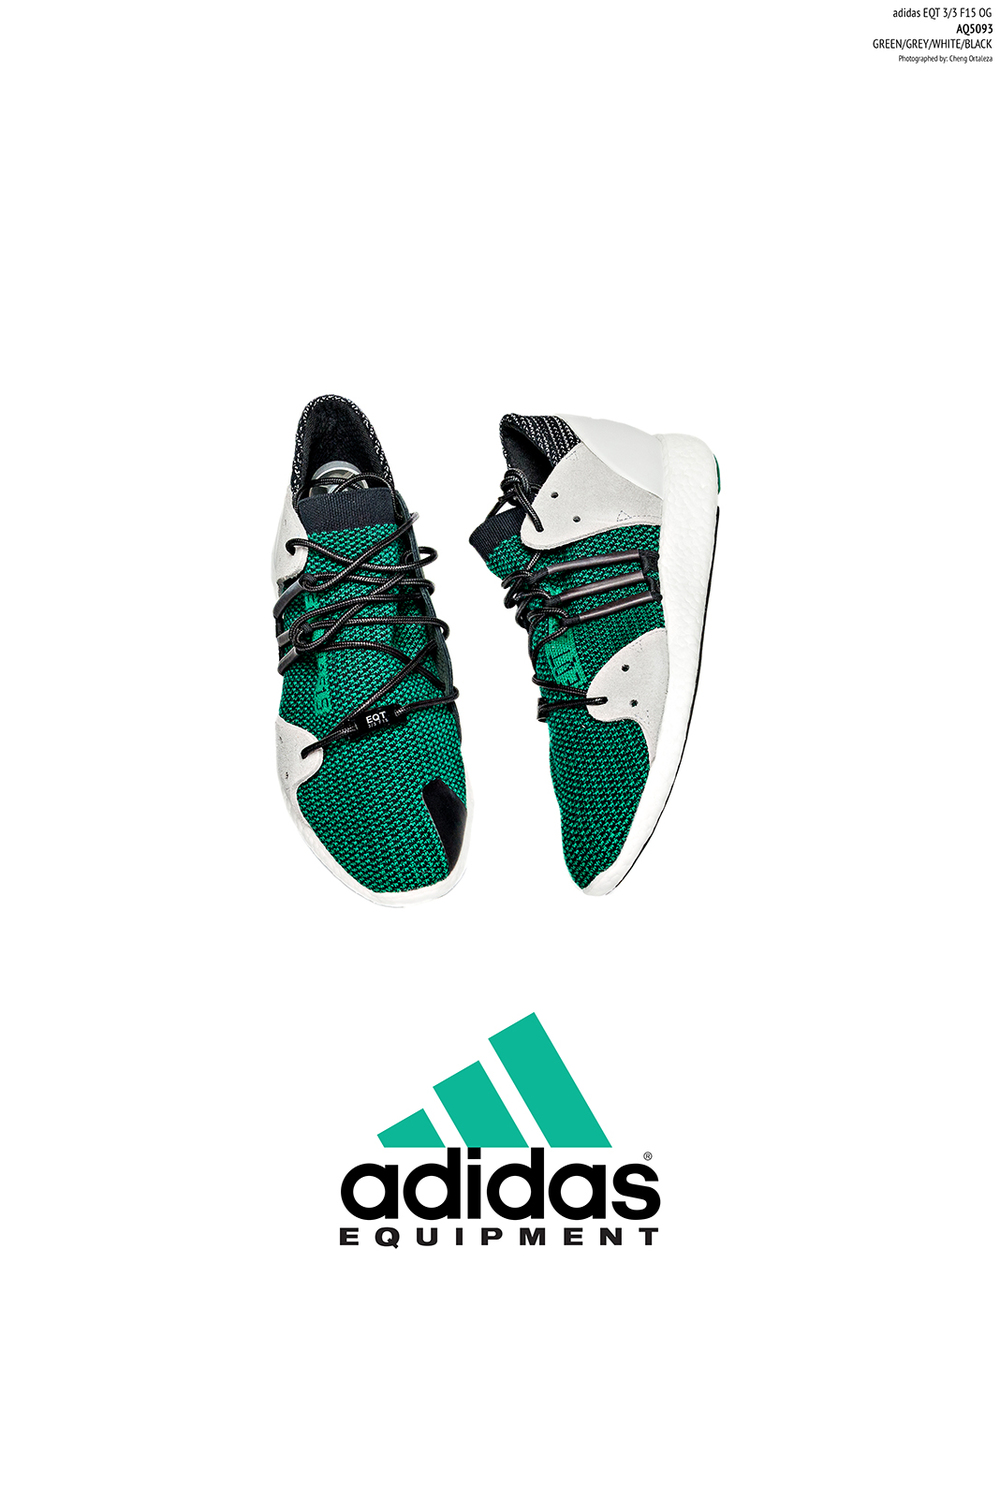 adidas EQT 3/3 F15 OG Sneakers Photography